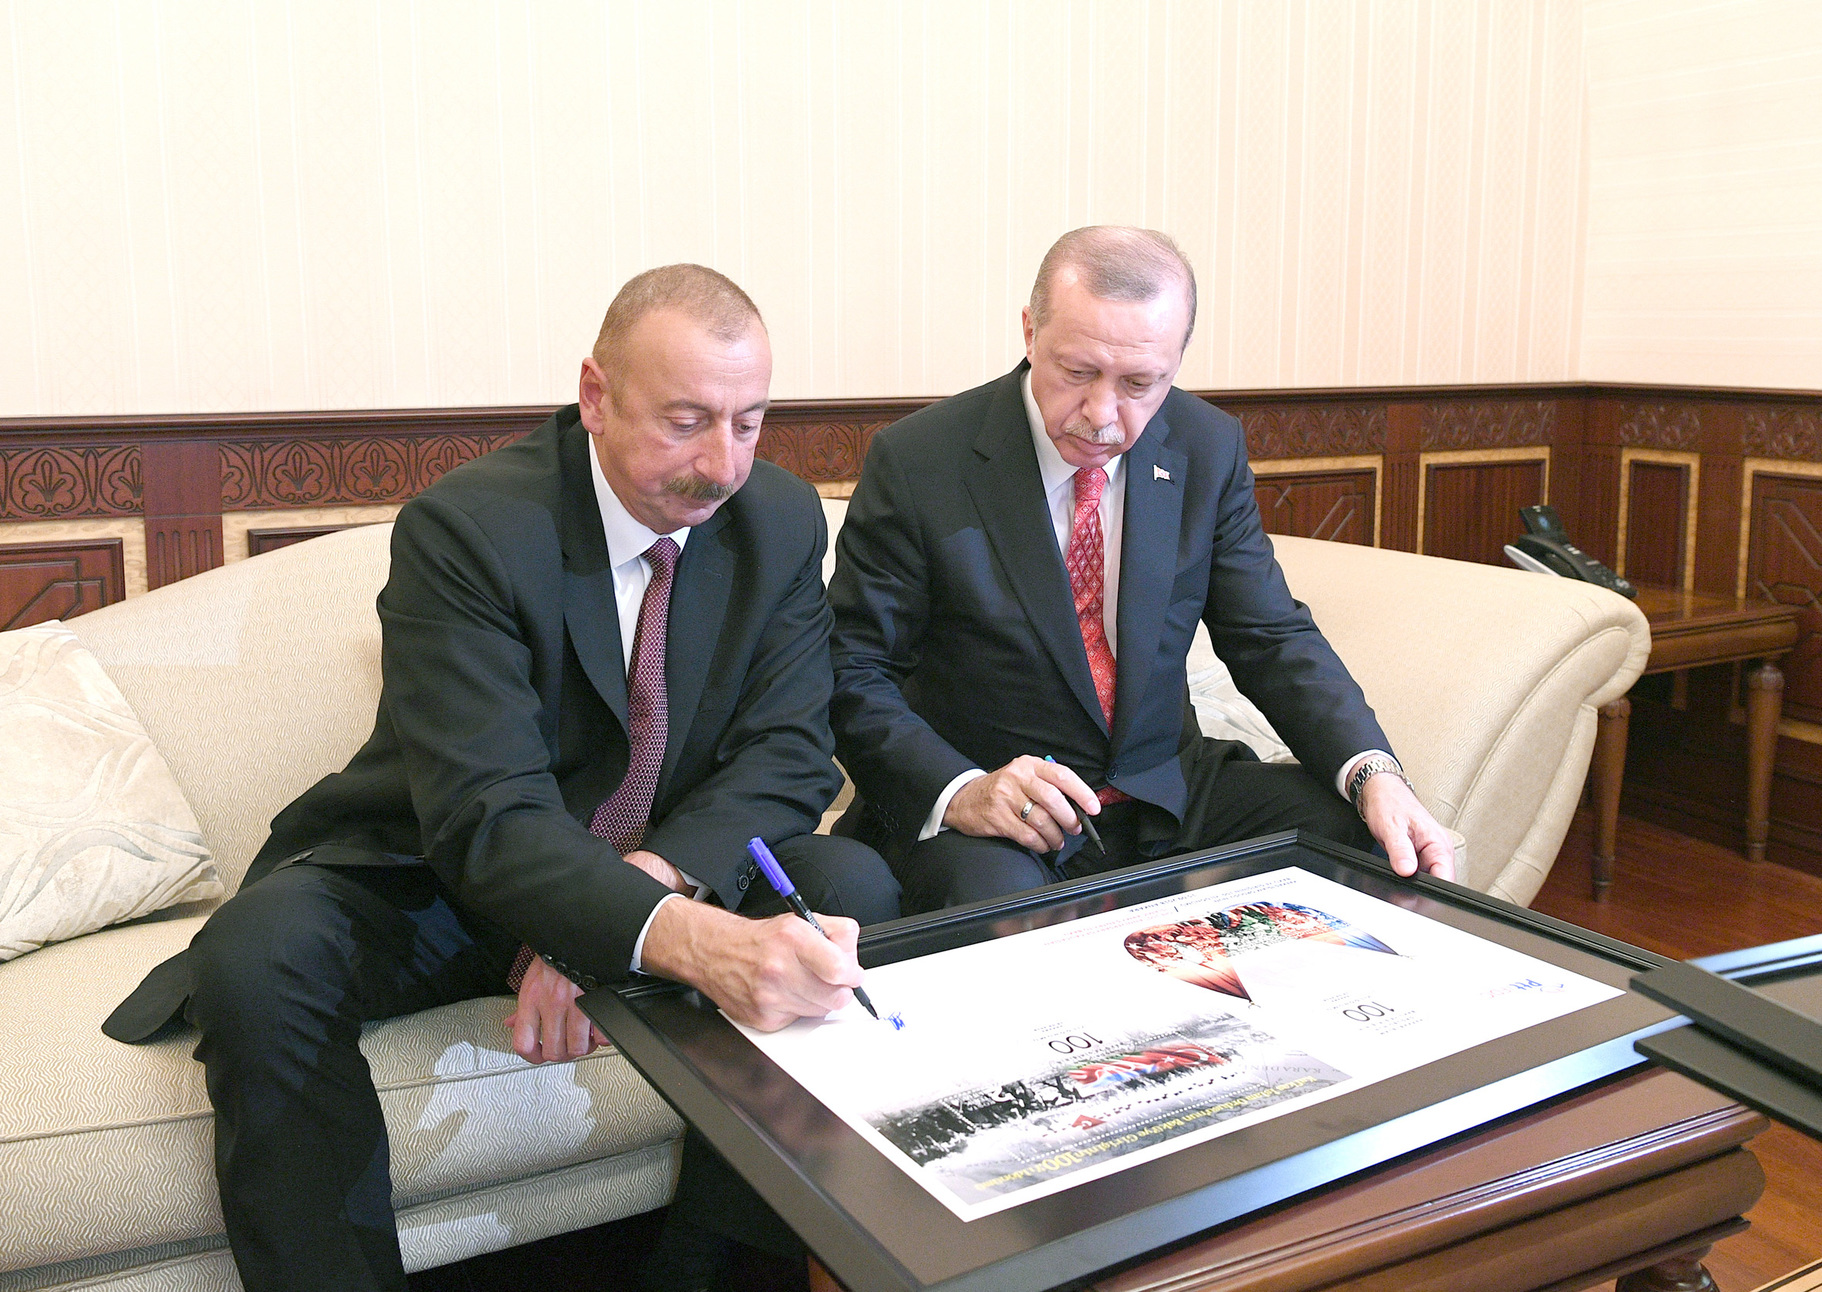 File:Ilham Aliyev and Recep Tayyip Erdogan attended the parade dedicated to  100th anniversary of liberation of Baku 11.jpg - Wikimedia Commons